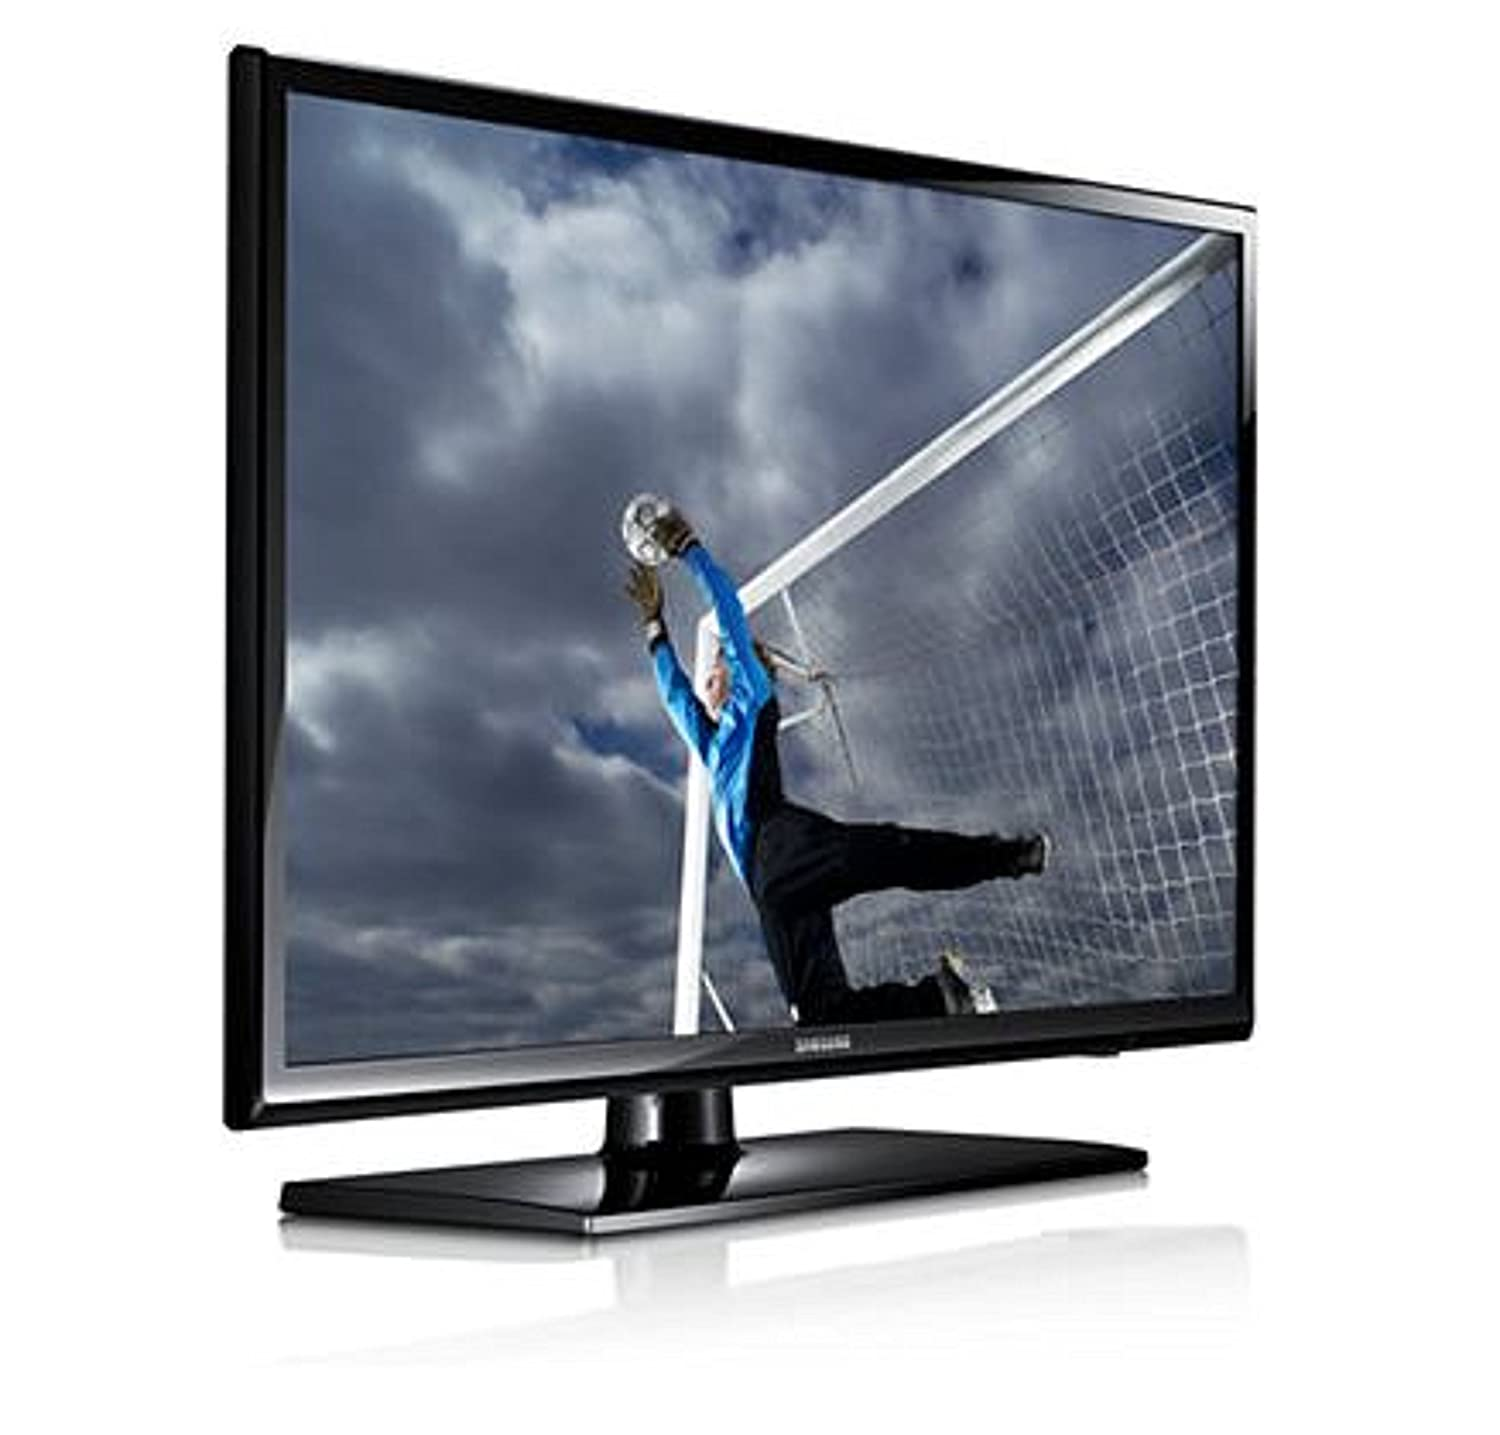 Samsung 32EH4003 81 cm HD Ready LED TV Amazon Electronics